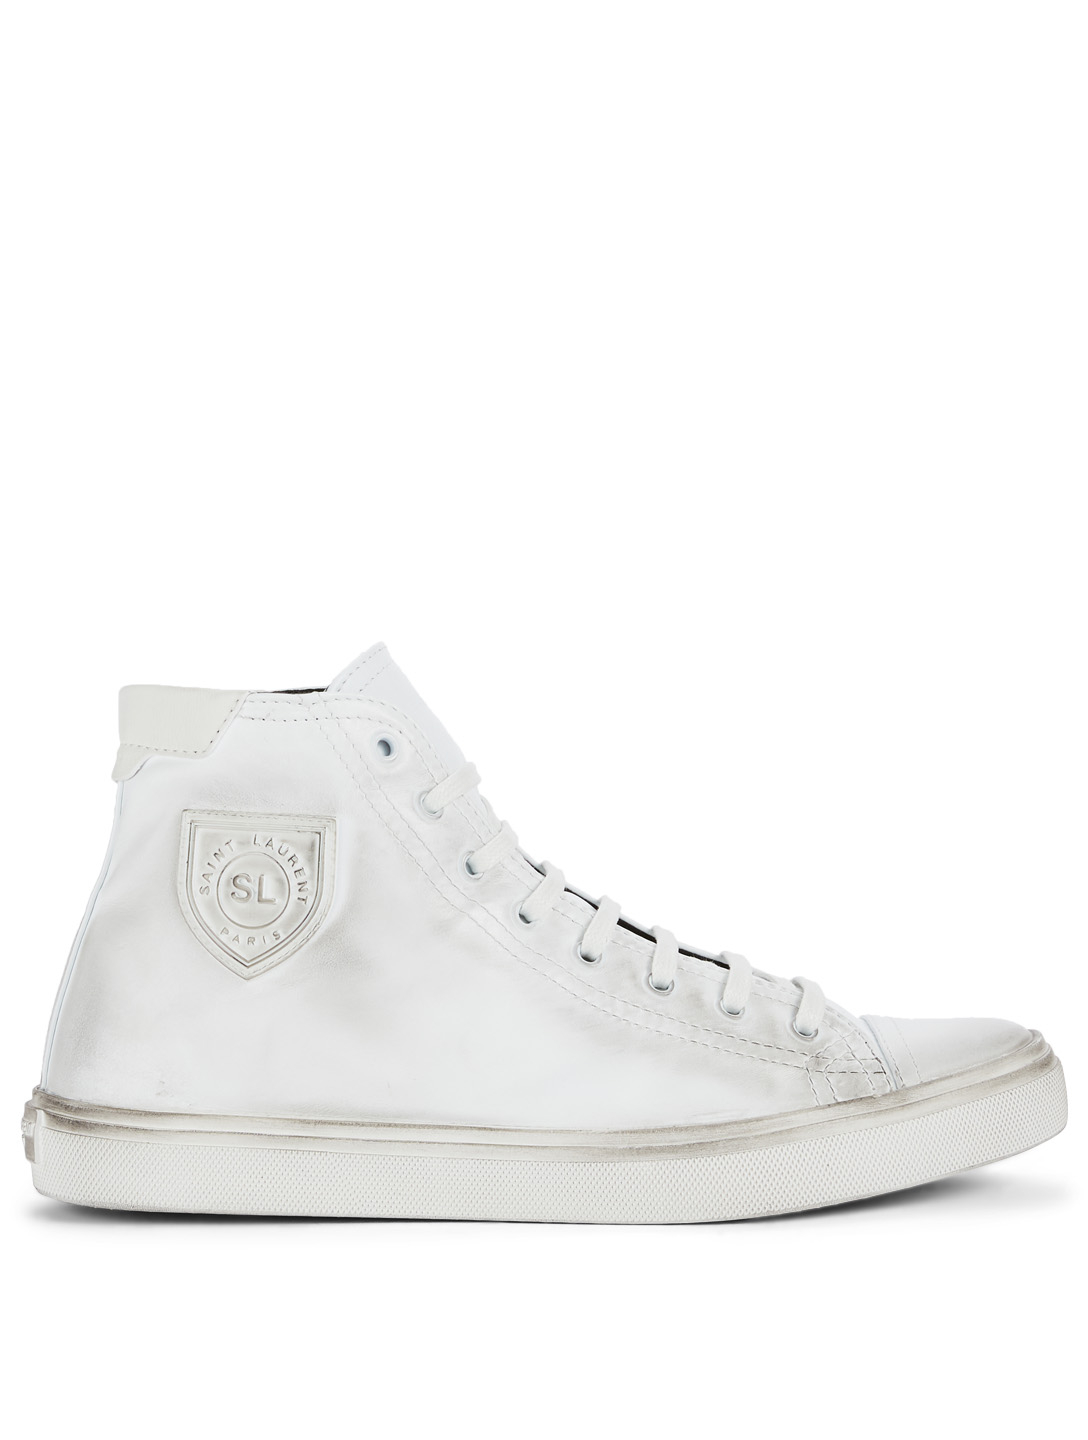 SAINT LAURENT Bedford Leather High-Top Sneakers Men's White